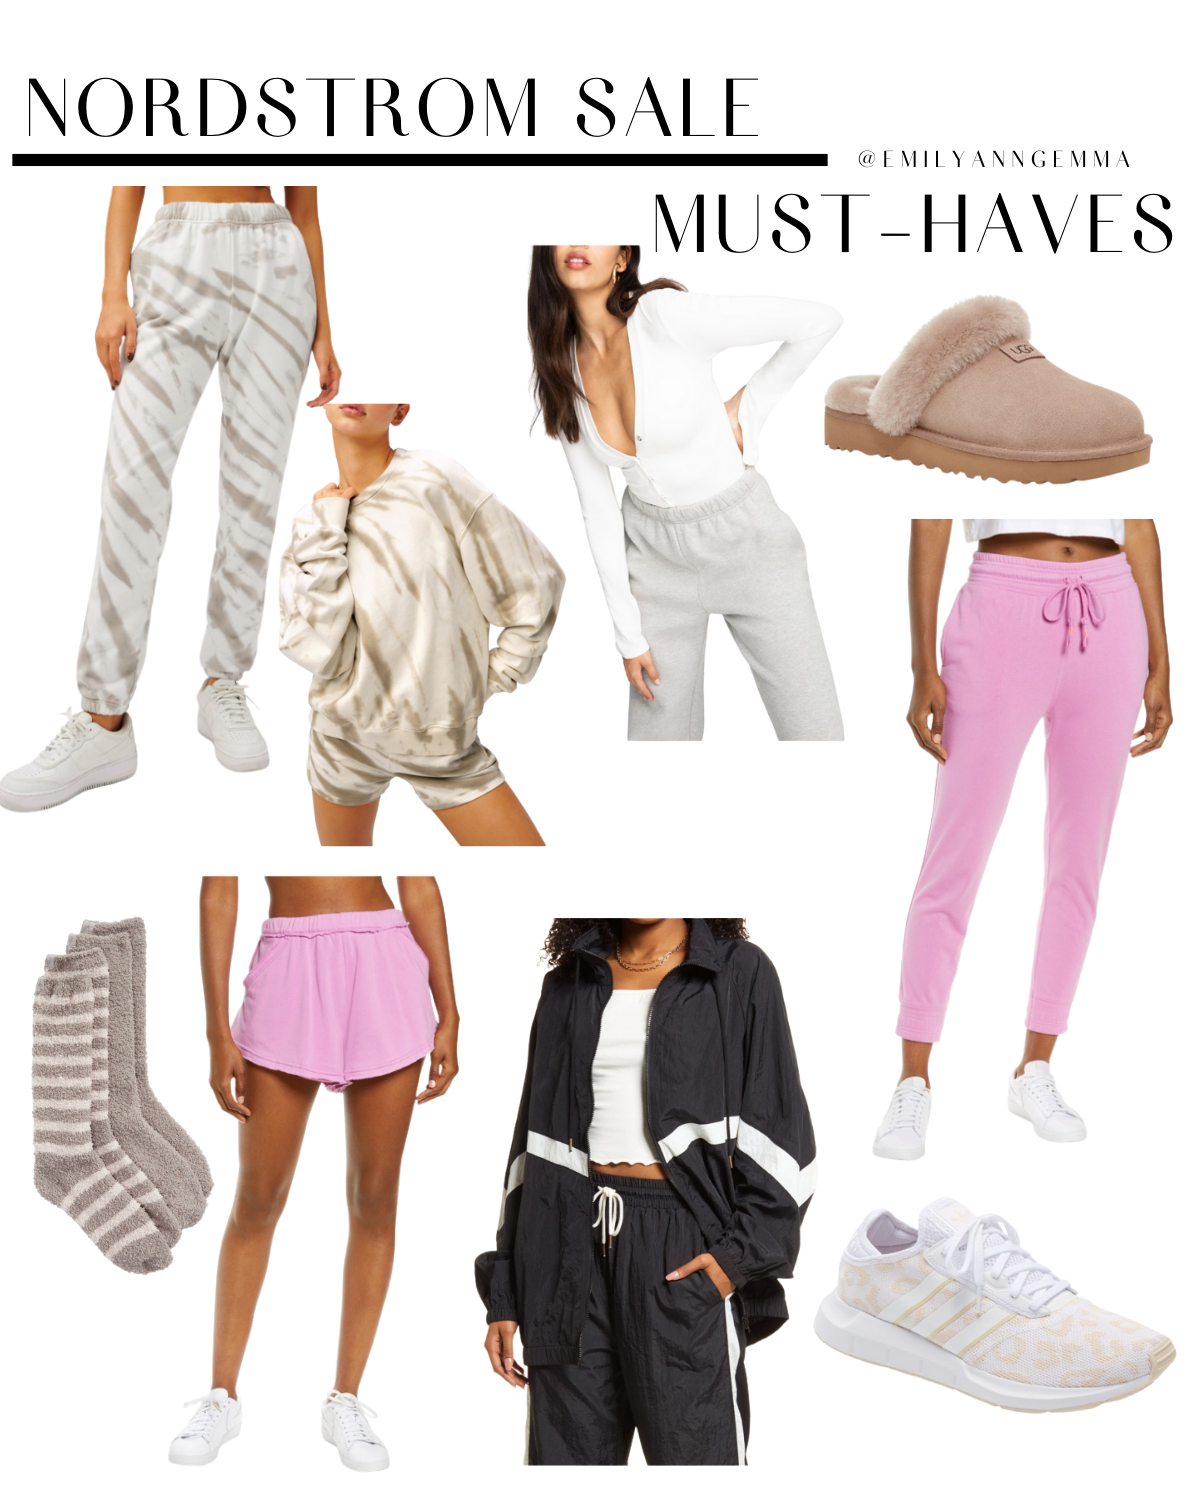 https://www.thesweetestthingblog.com/app/uploads/2021/07/NSALE-Sneek-Preview-9 |  Nordstrom Anniversary Sale by popular US fashion blog, The Sweetest Thing: collage image of tan and white tie dye sweat pants, tan and white tie dye sweat shirt, white long sleeve henley top, UGG slippers, pink tie waist sweatpants, grey fuzzy socks, tan and white leopard print Adidas sneakers, pink shorts, and black and white track suit.